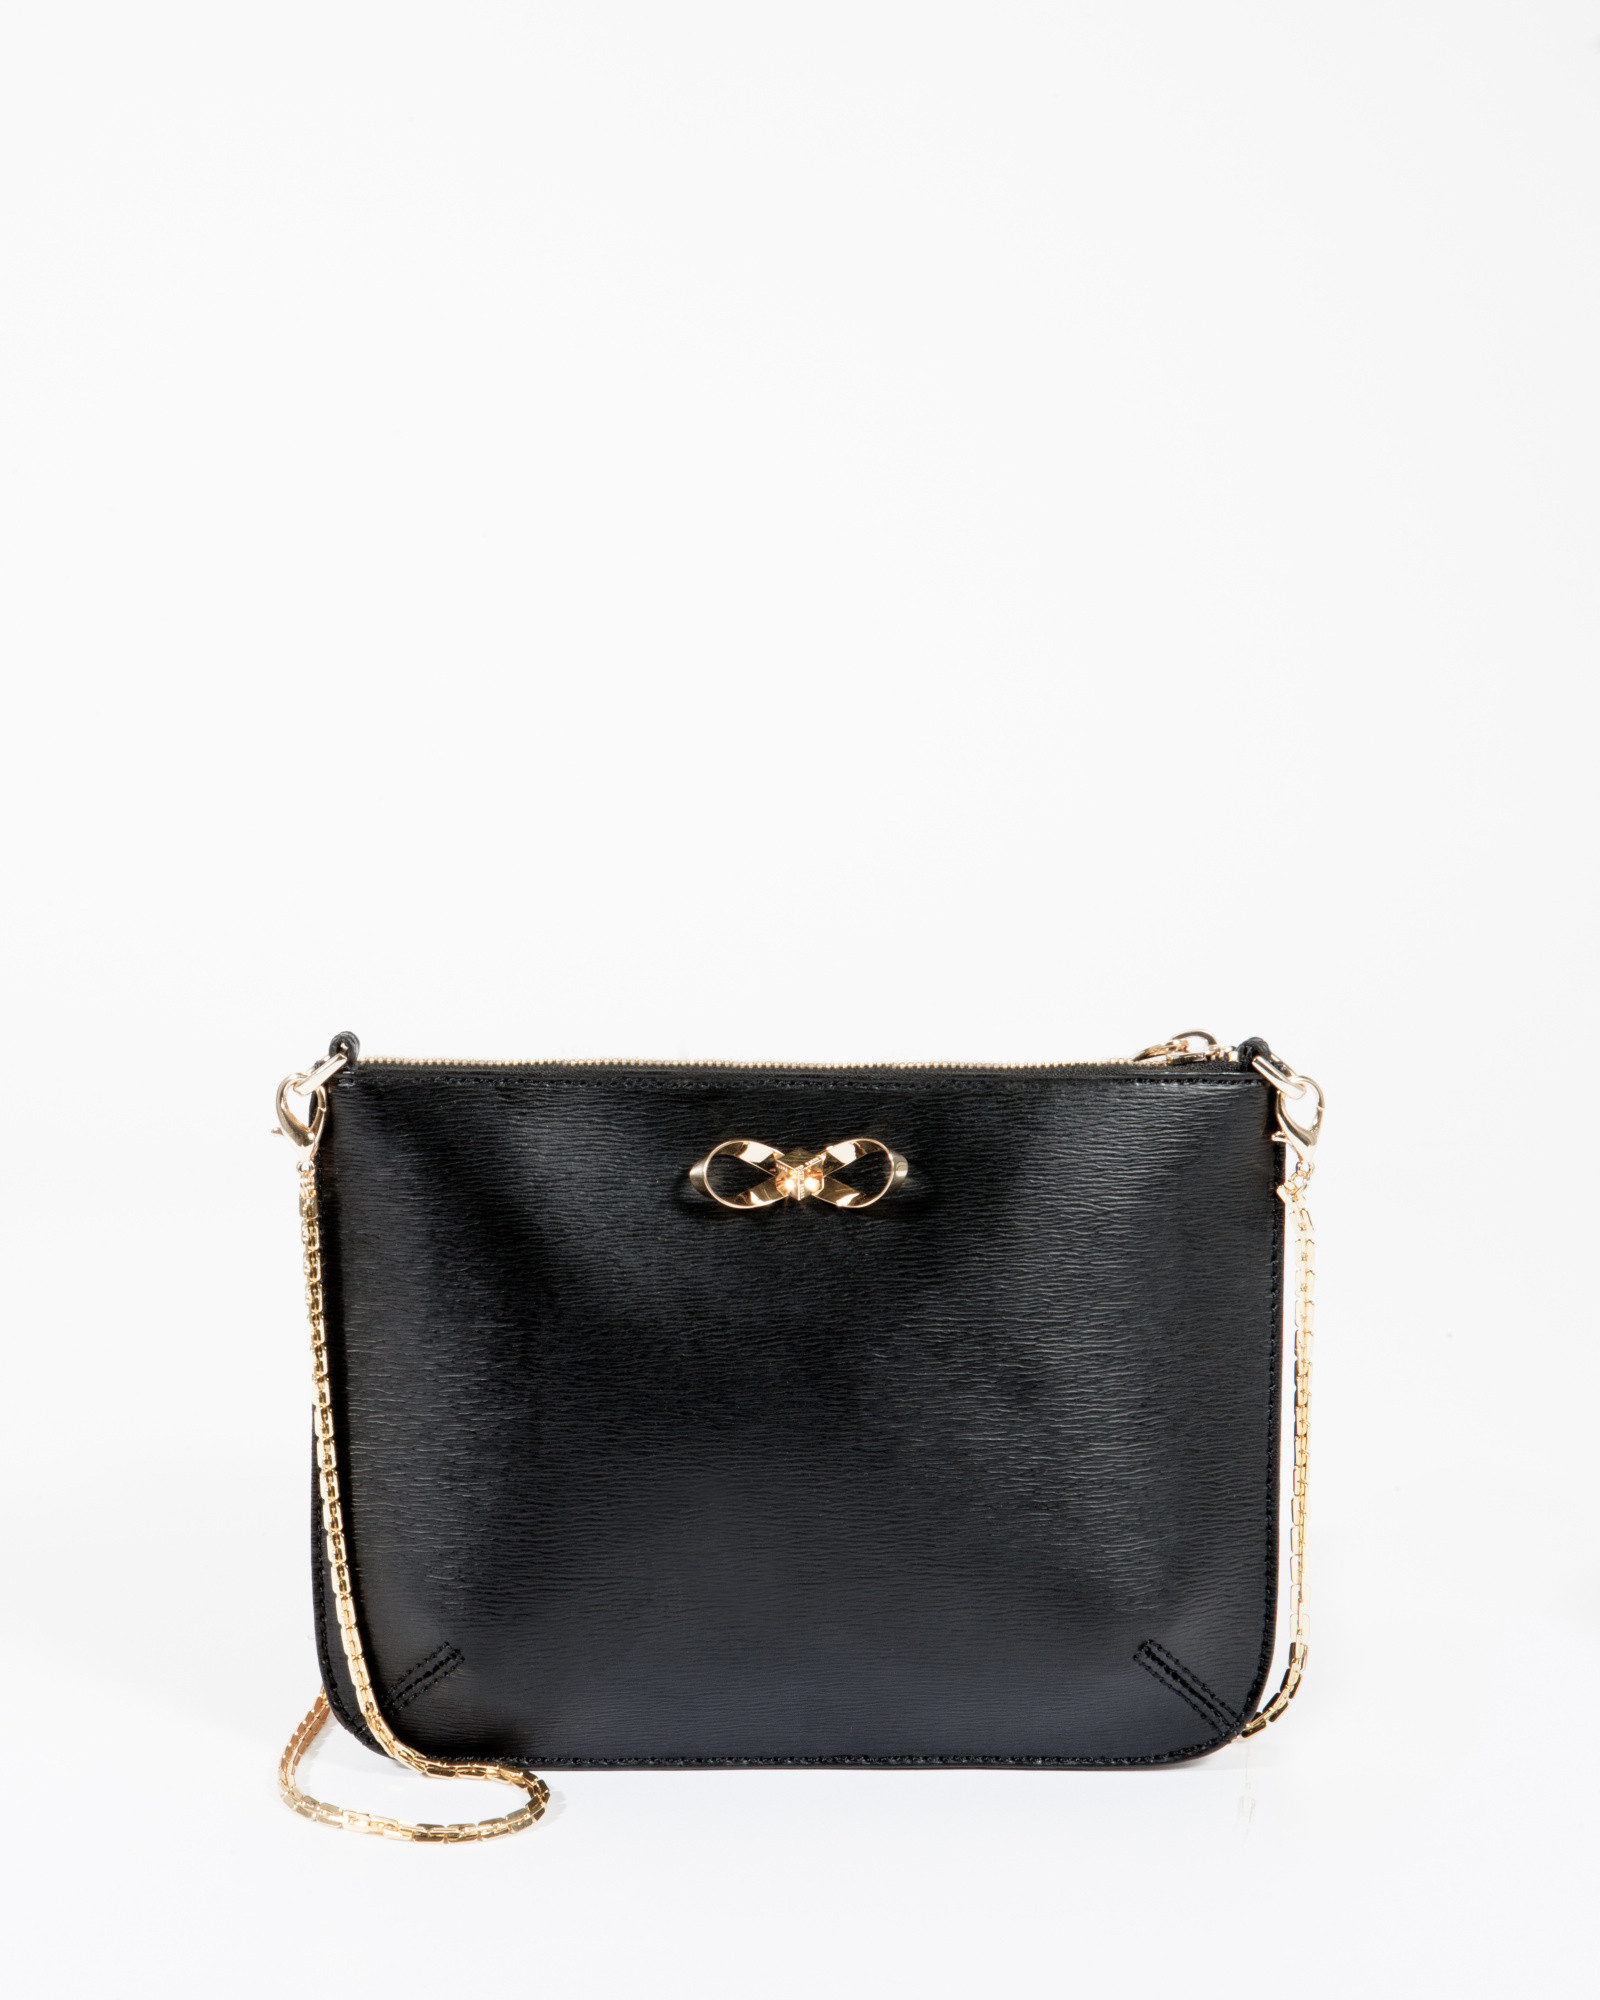 d12a65ea9c4f2 Ted Baker Crosshatch Leather Clutch Bag in Black - Lyst